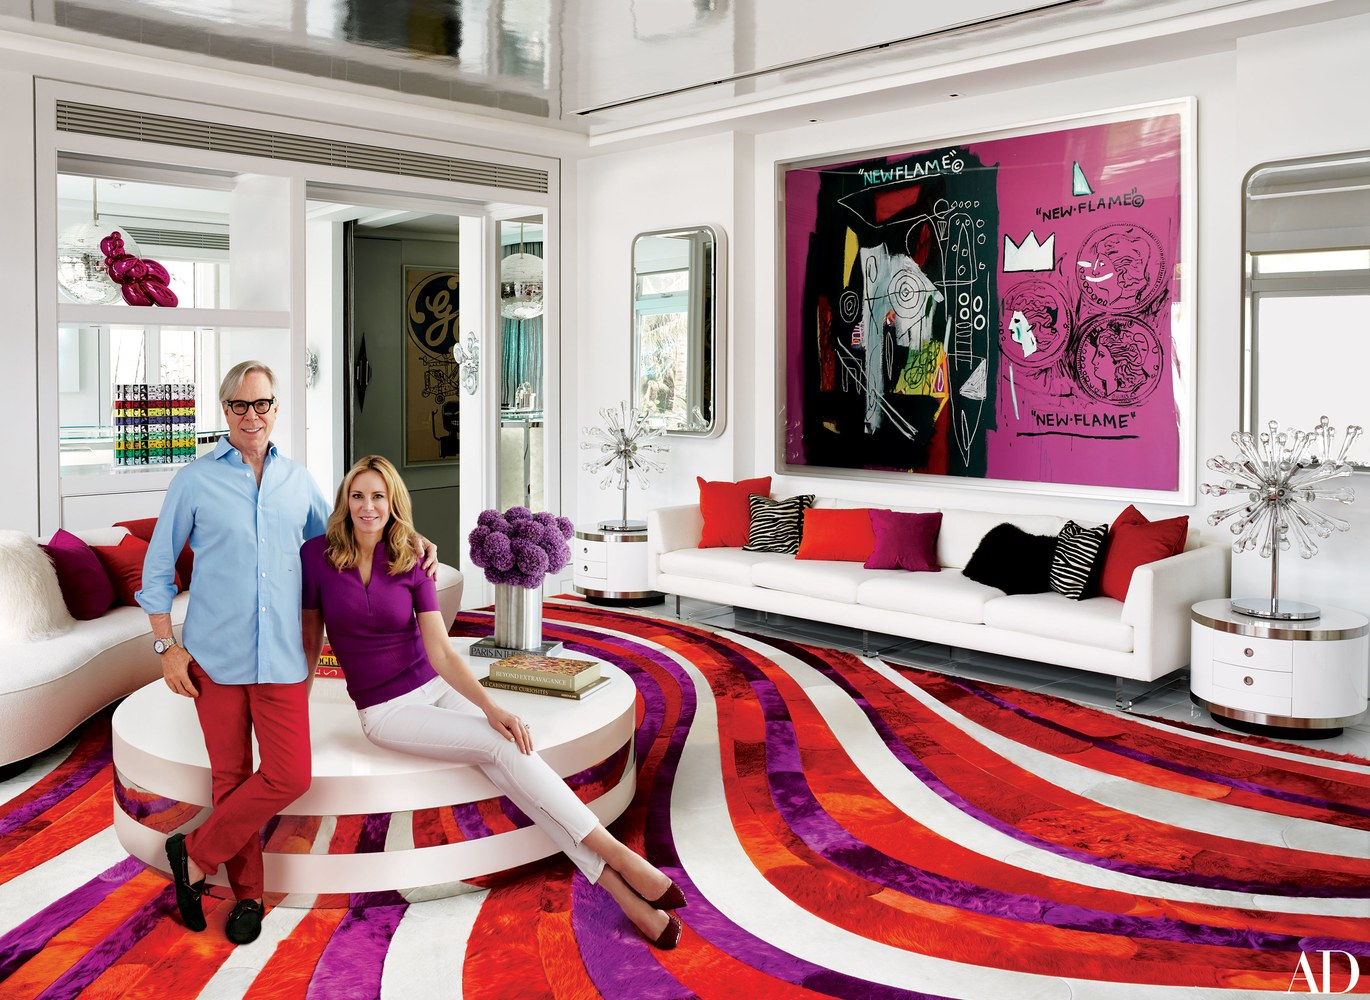 Tommy Hilfiger Florida Mansion is Definitely Something to Look At Maximalist Home in California Tour a Luxury Maximalist Home in California Tommy Hilfiger Florida Mansion is Definitely Something to Look At 9 Maximalist Home in California Tour a Luxury Maximalist Home in California Tommy Hilfiger Florida Mansion is Definitely Something to Look At 9